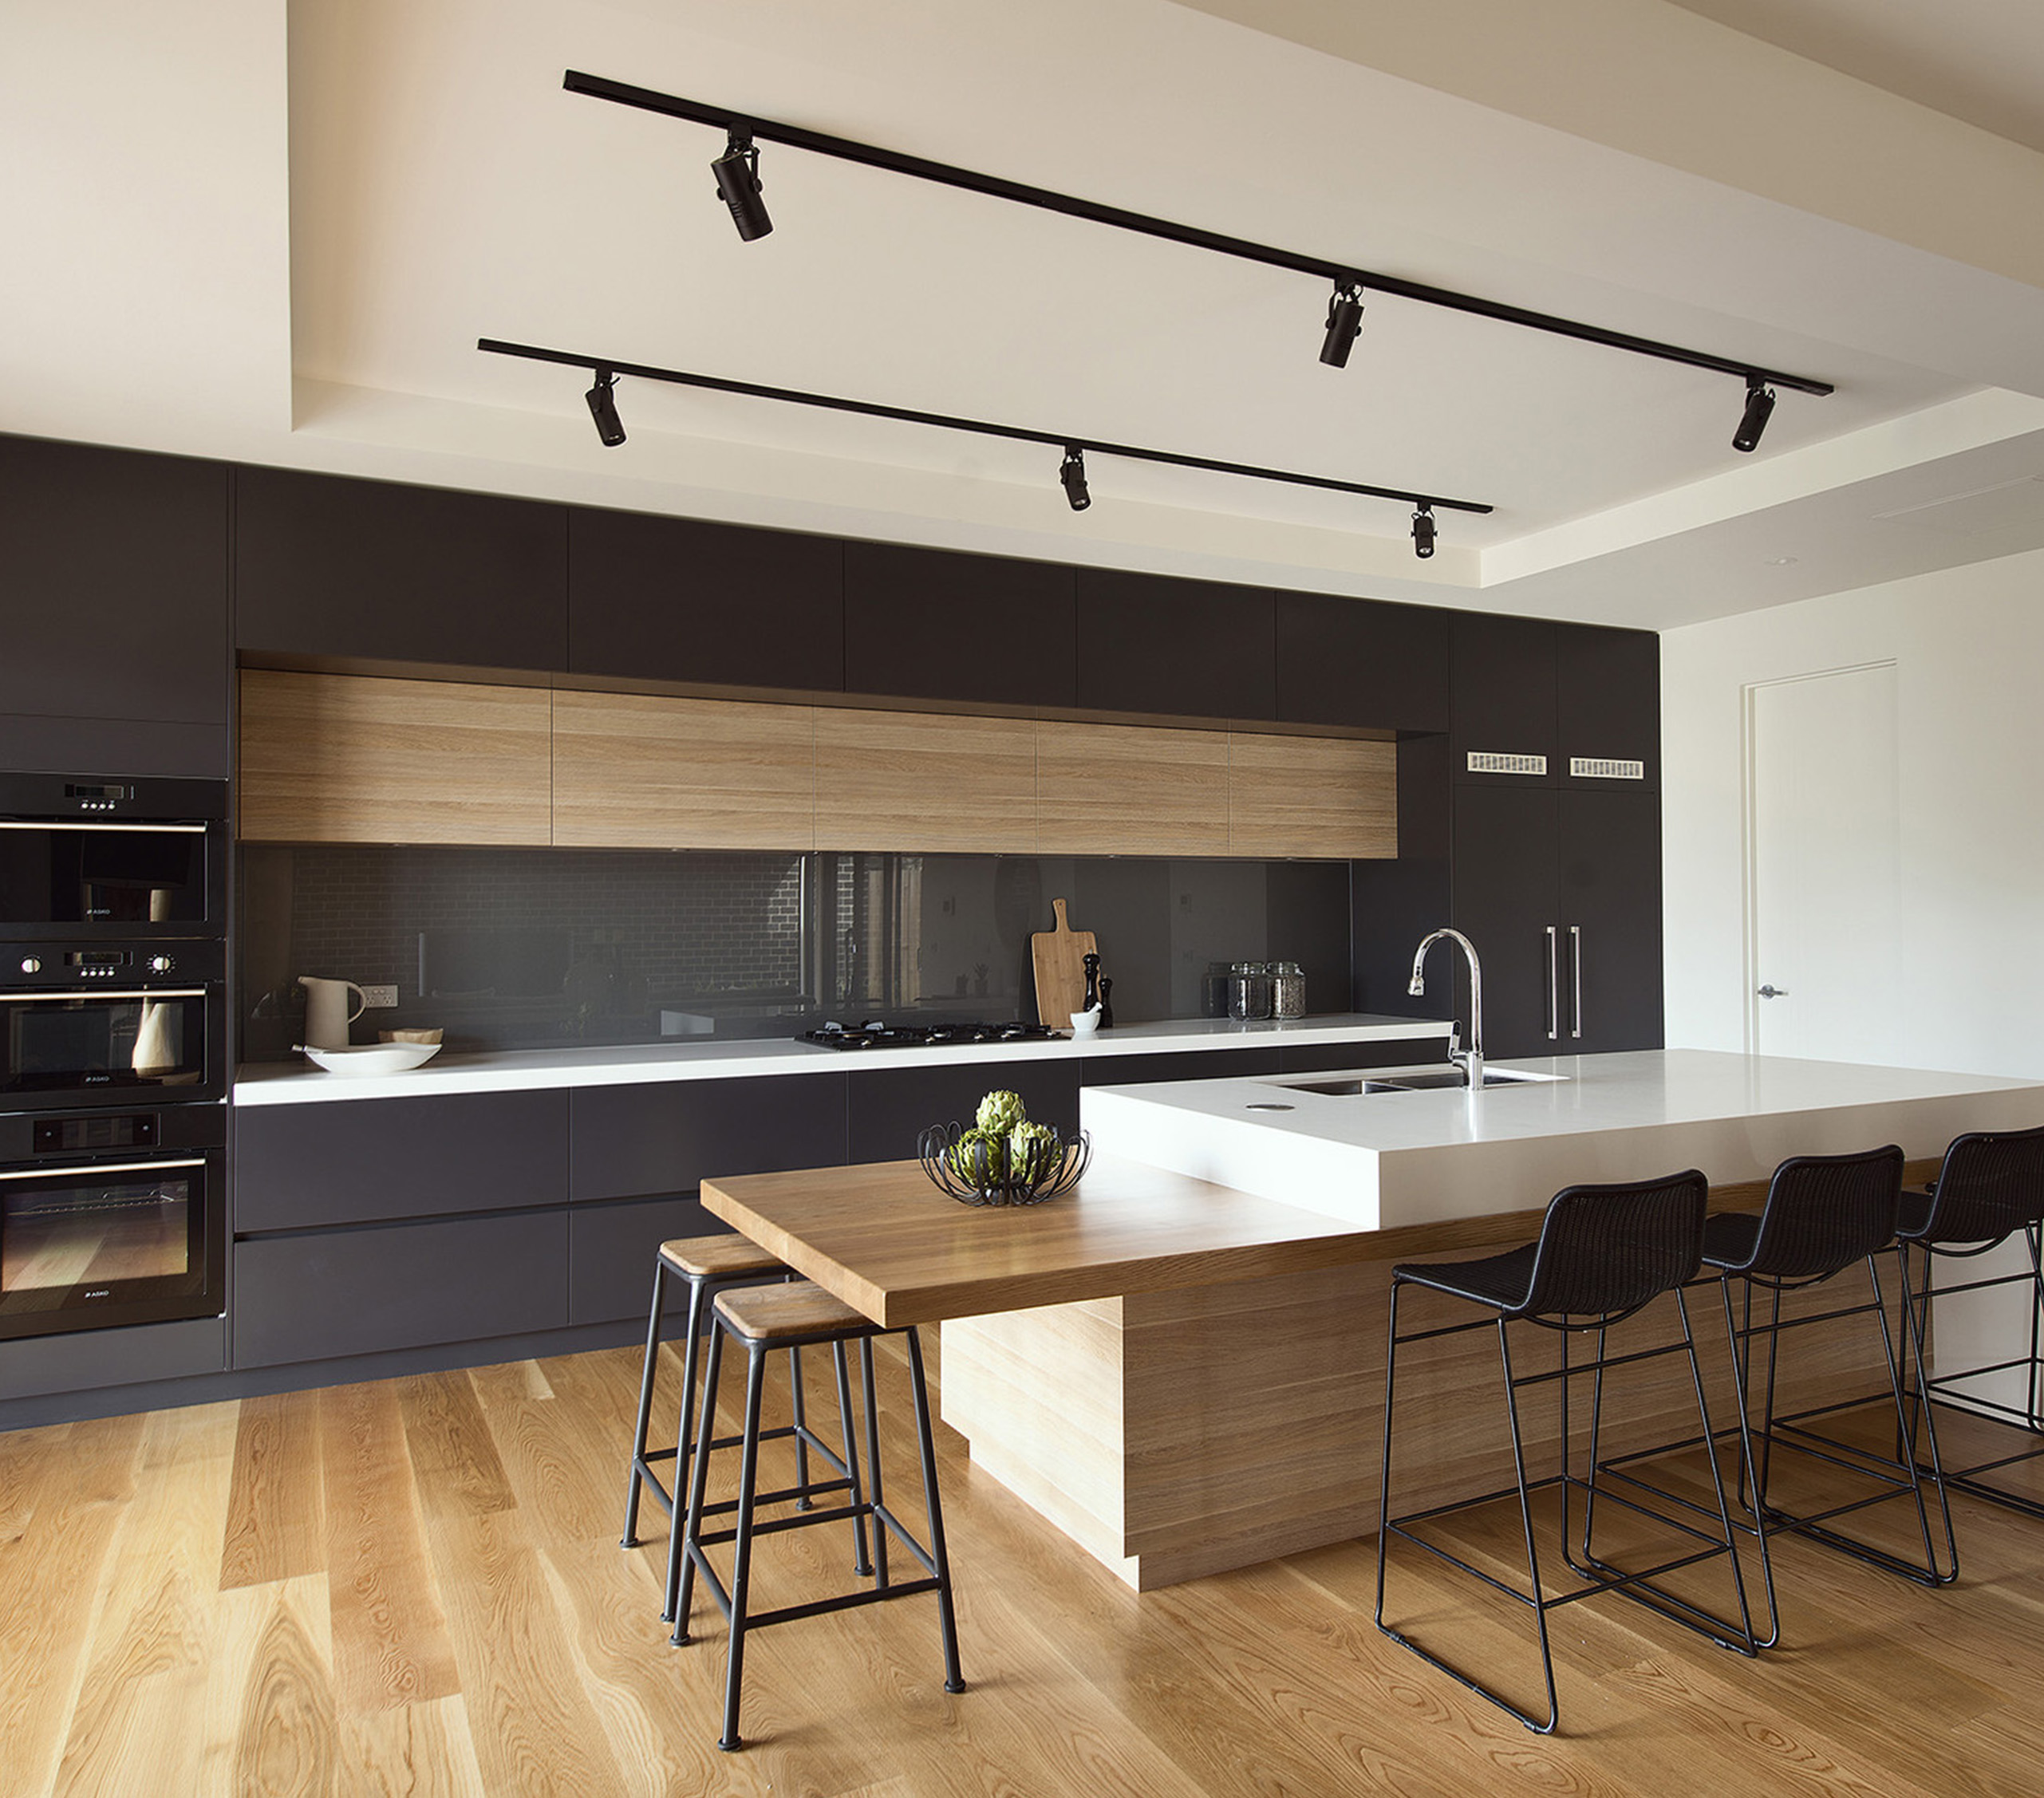 New Home Designs Latest Modern Home Kitchen Cabinet: Cucine Armony Archivi